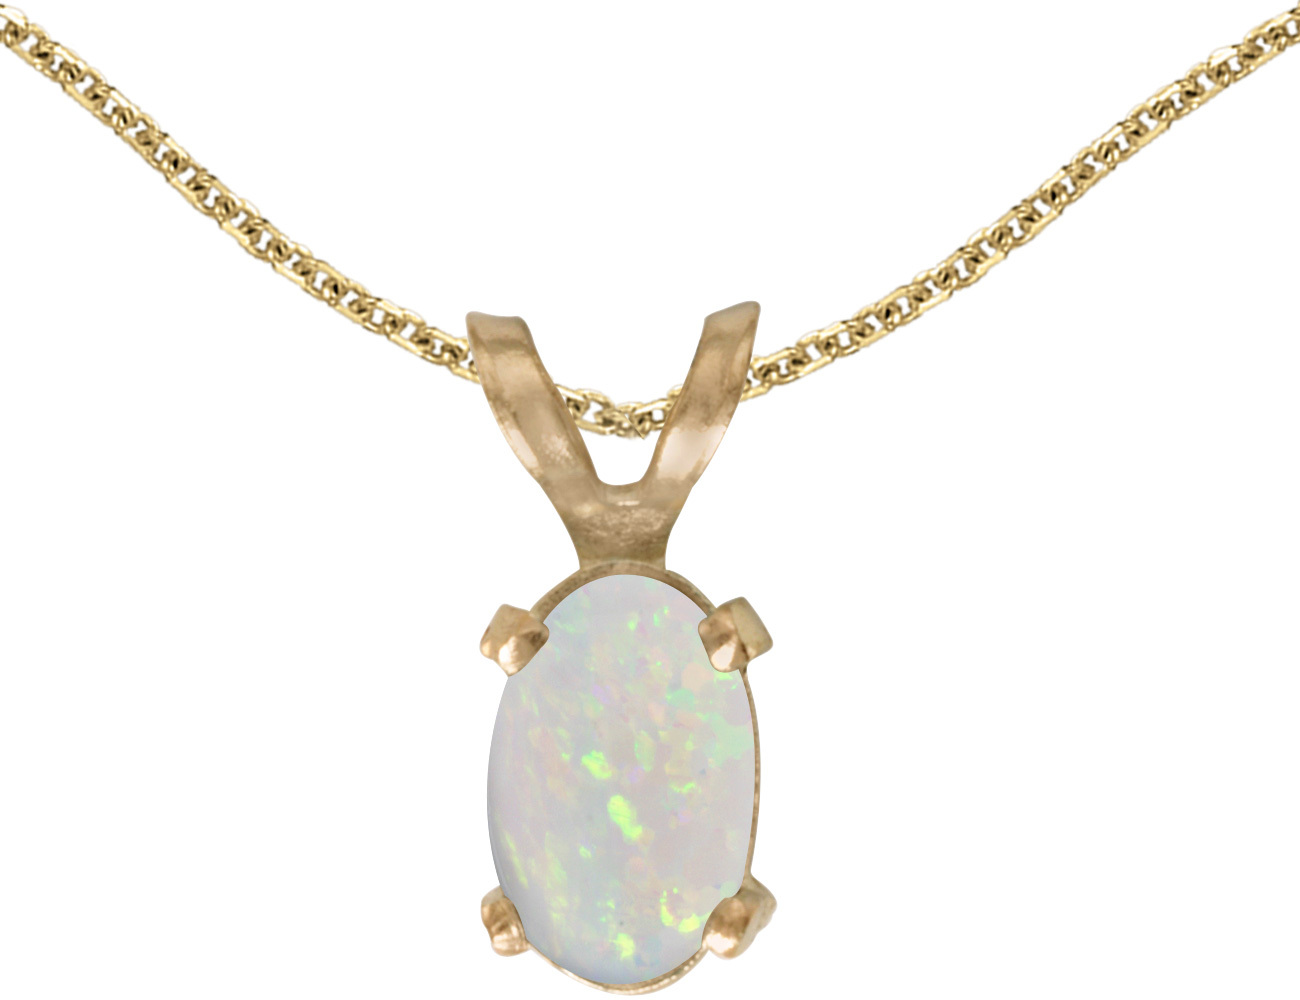 14k Yellow Gold Oval Opal Pendant (Chain NOT included)